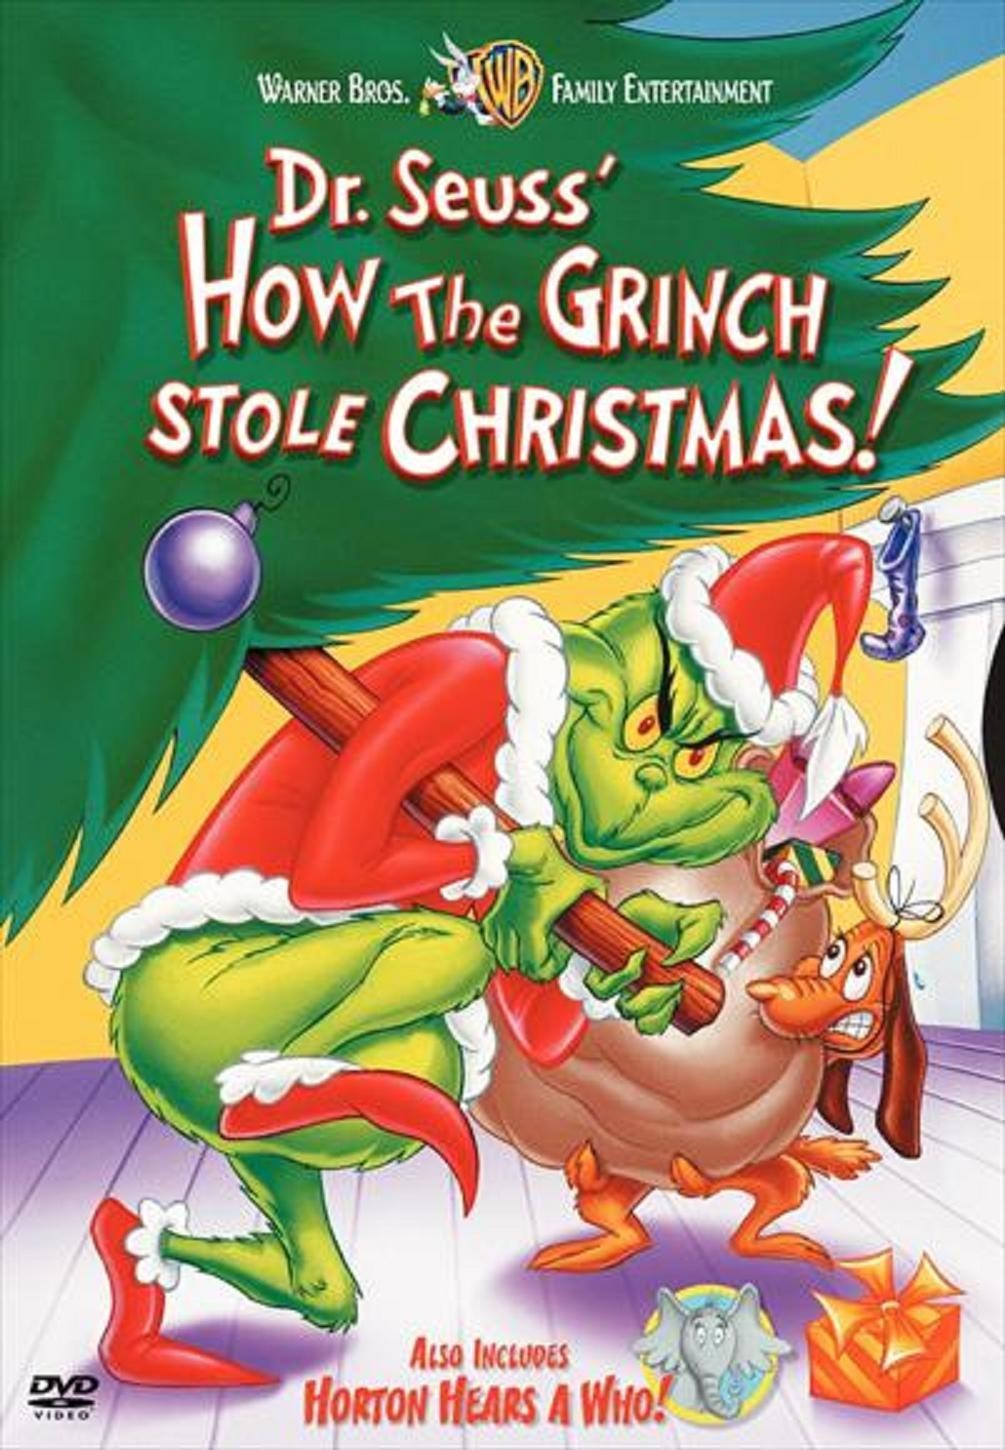 How the Grinch Stole Christmas (TV) | Moviepedia | FANDOM powered ...